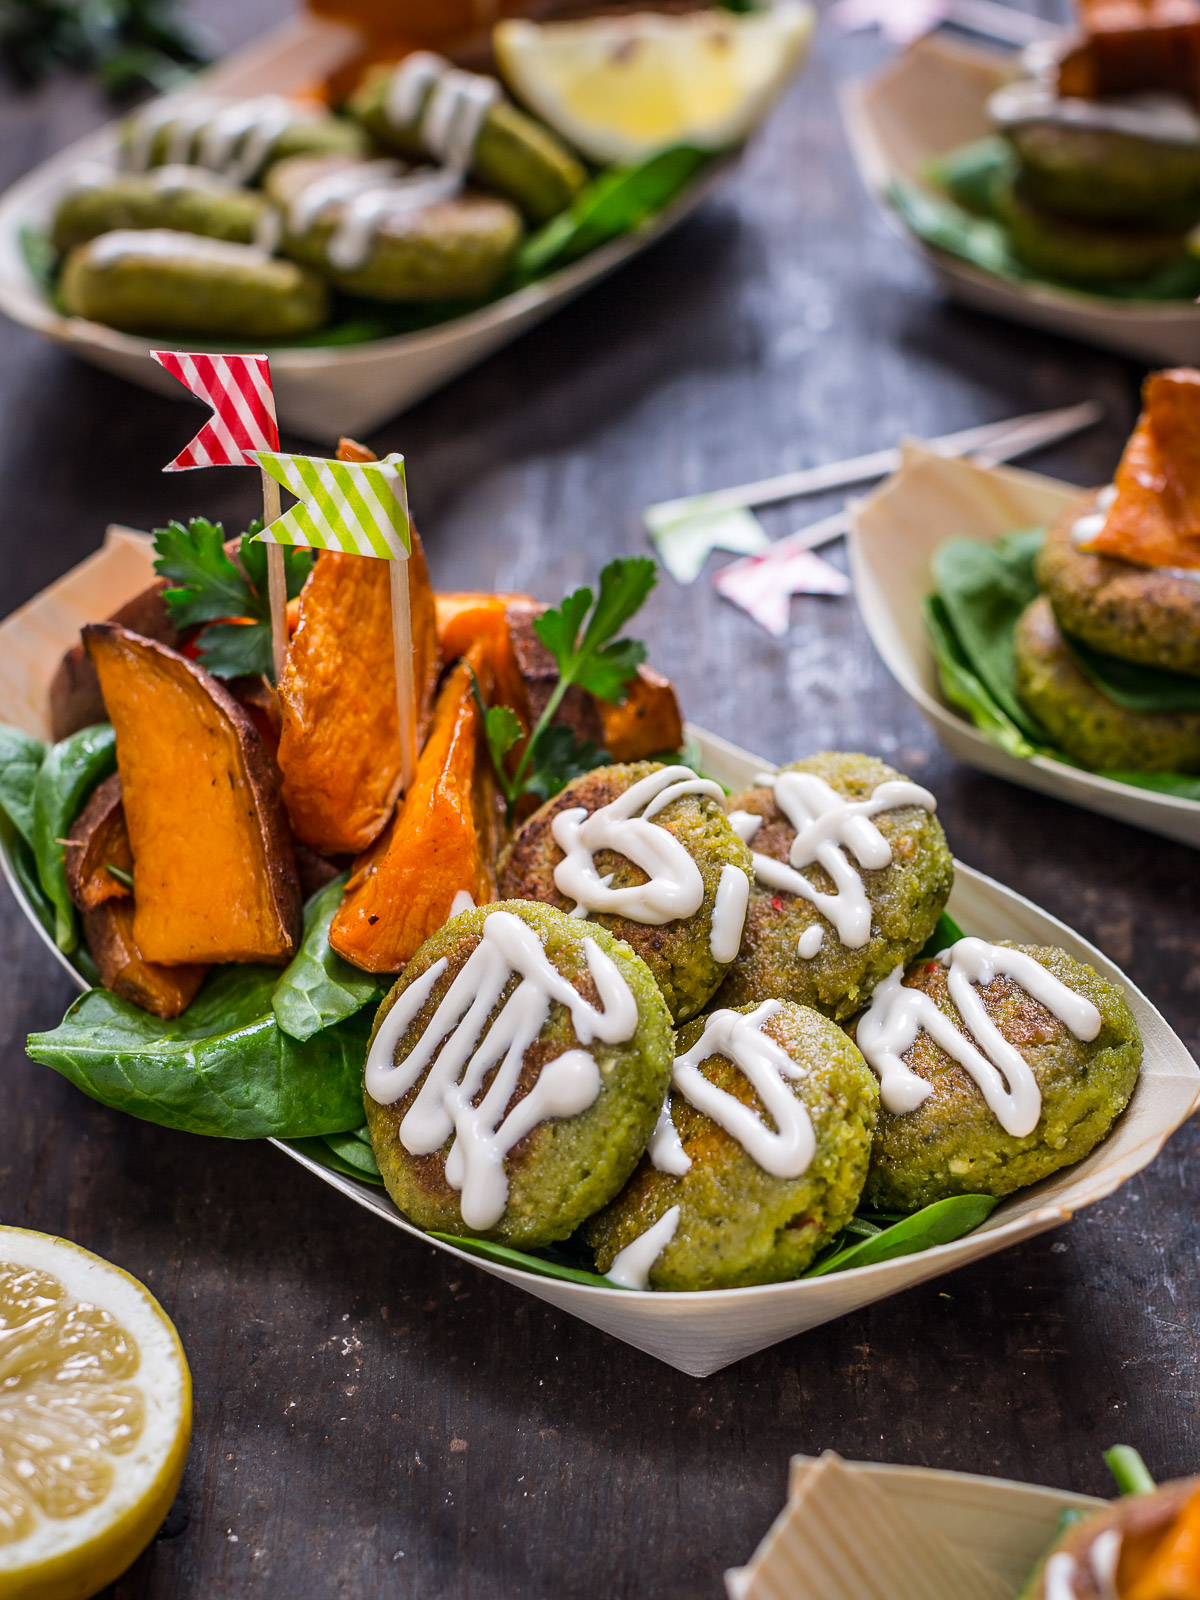 vegan easy falafel with tahini sauce and rosemary baked potatoes - ricetta falafel non fritti in padella facilissimi con patate dolci al forno